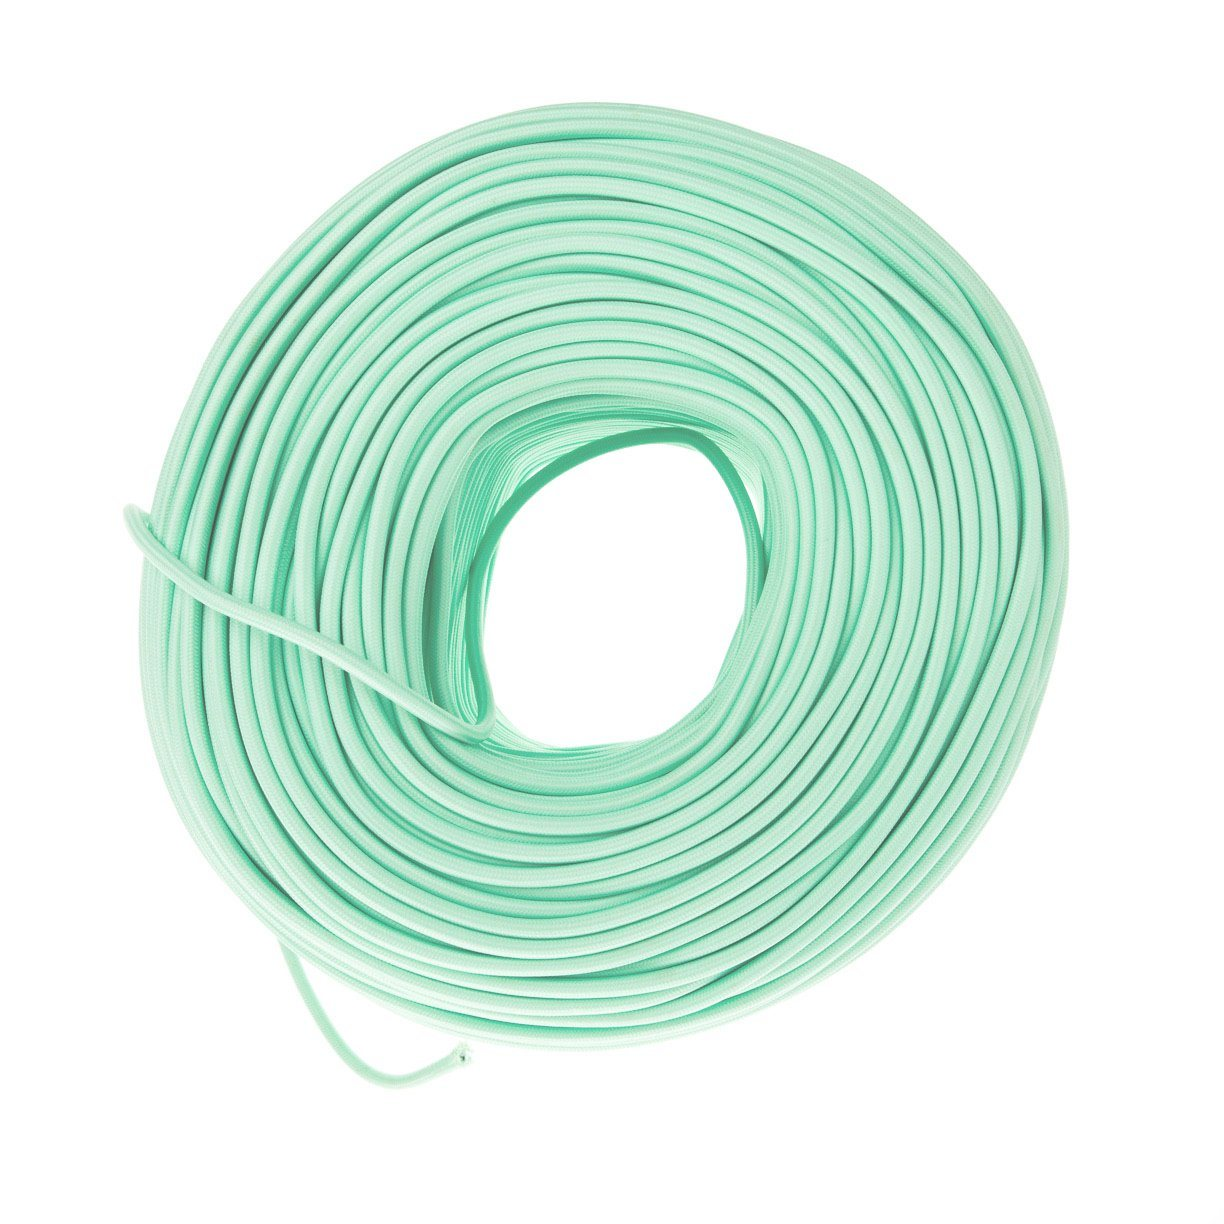 DIY Fabric Wire by the Foot - Mint Green on